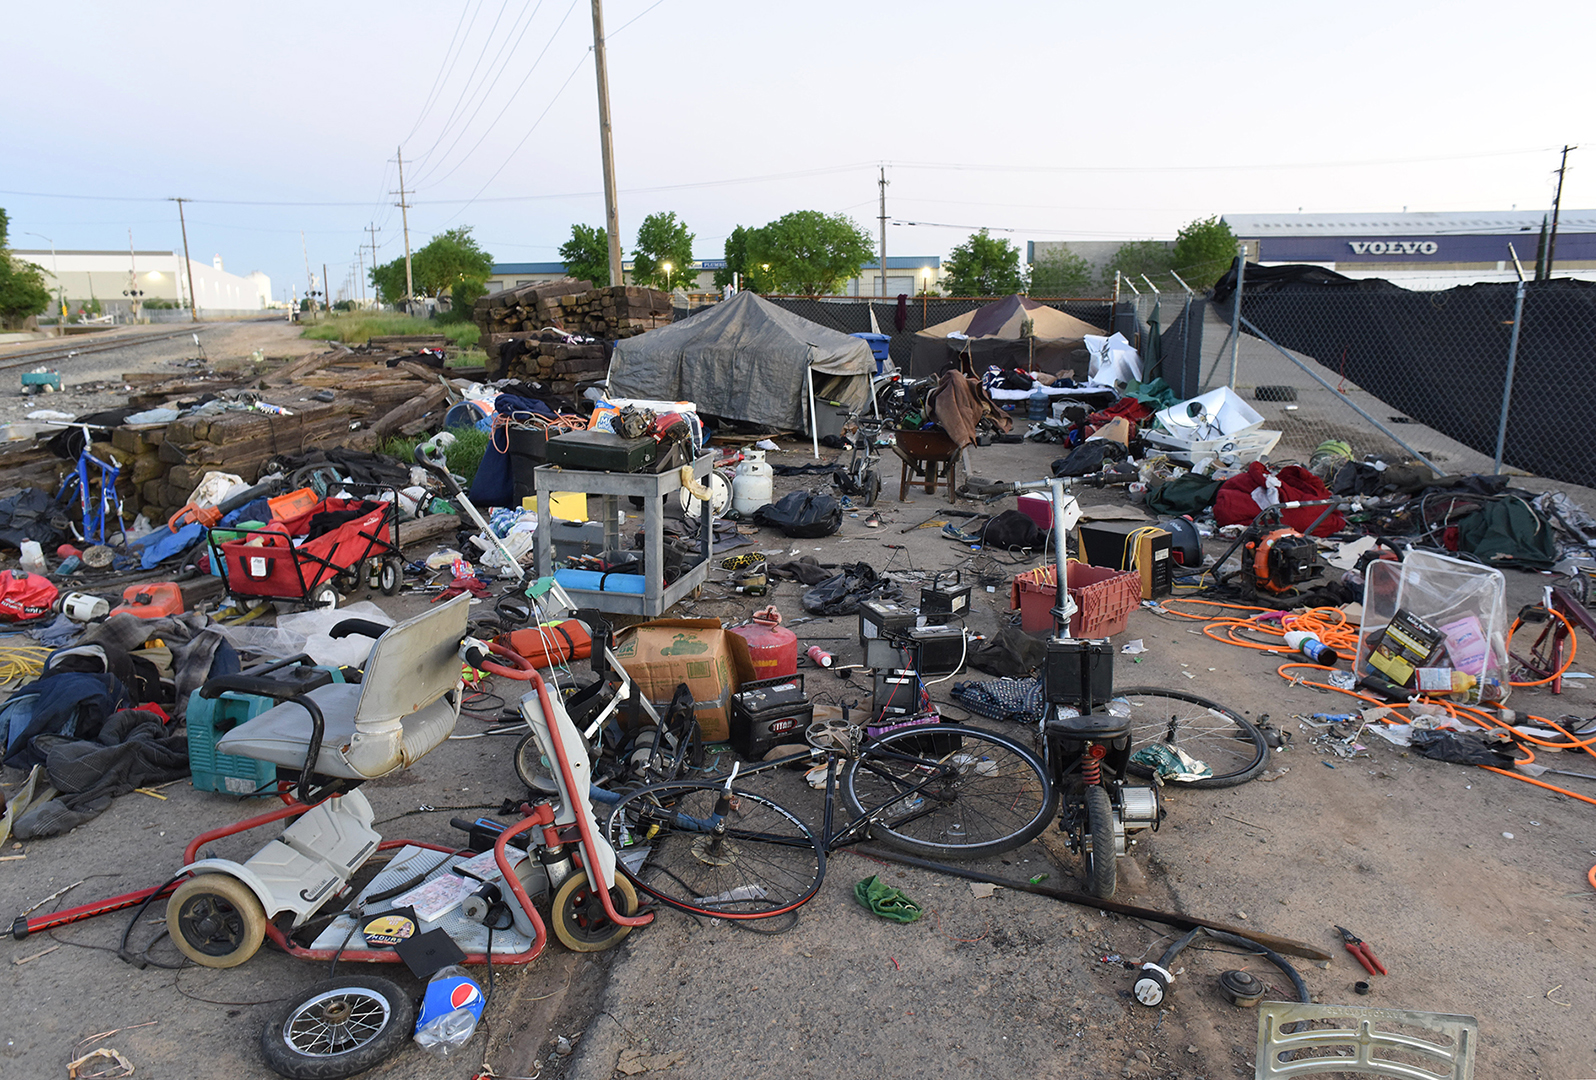 A homeless camp on the railroad right of way near Fruitridge Road. Lance visited this camp searching for his motorcycle.